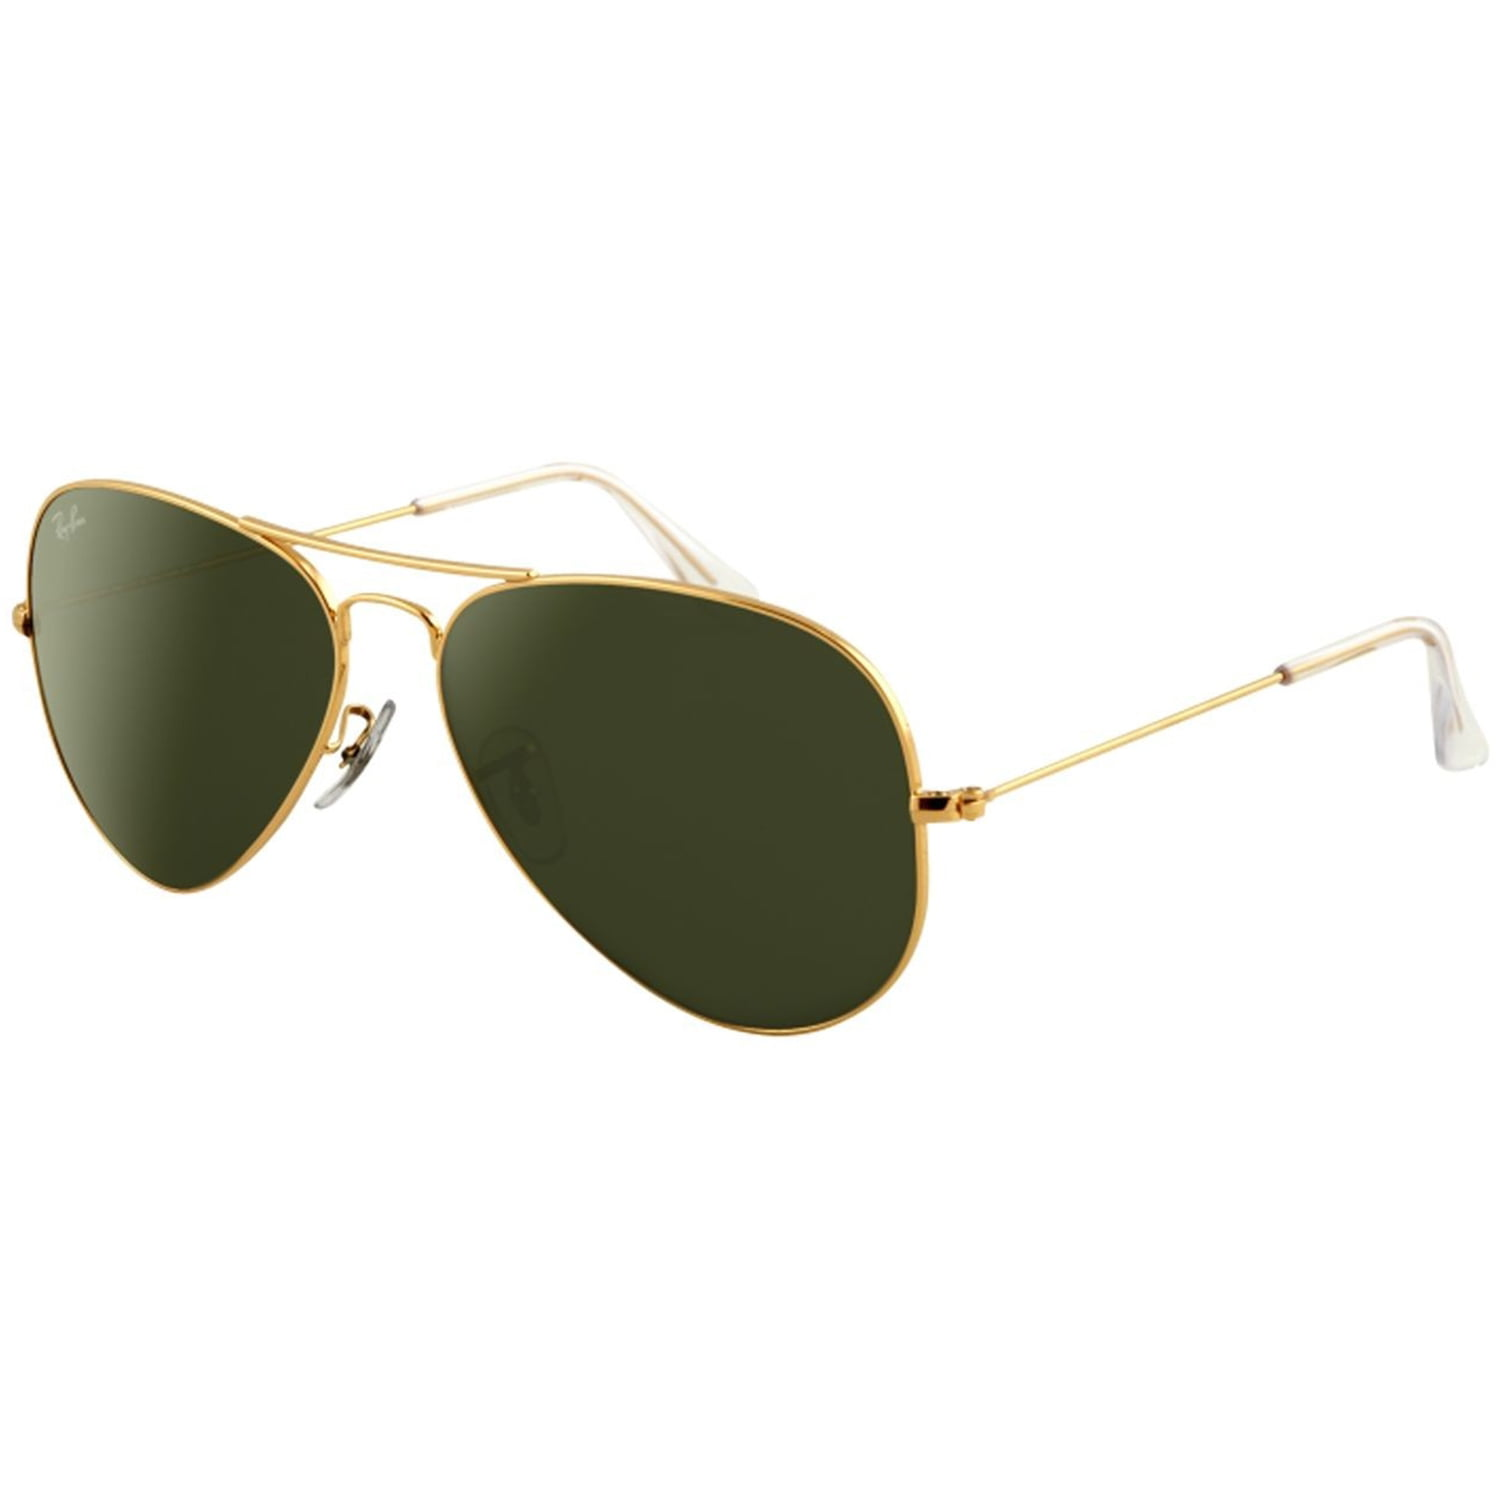 ray ban aviator rb3025  ray ban men's aviator rb3025 l0205 58 gold aviator sunglasses